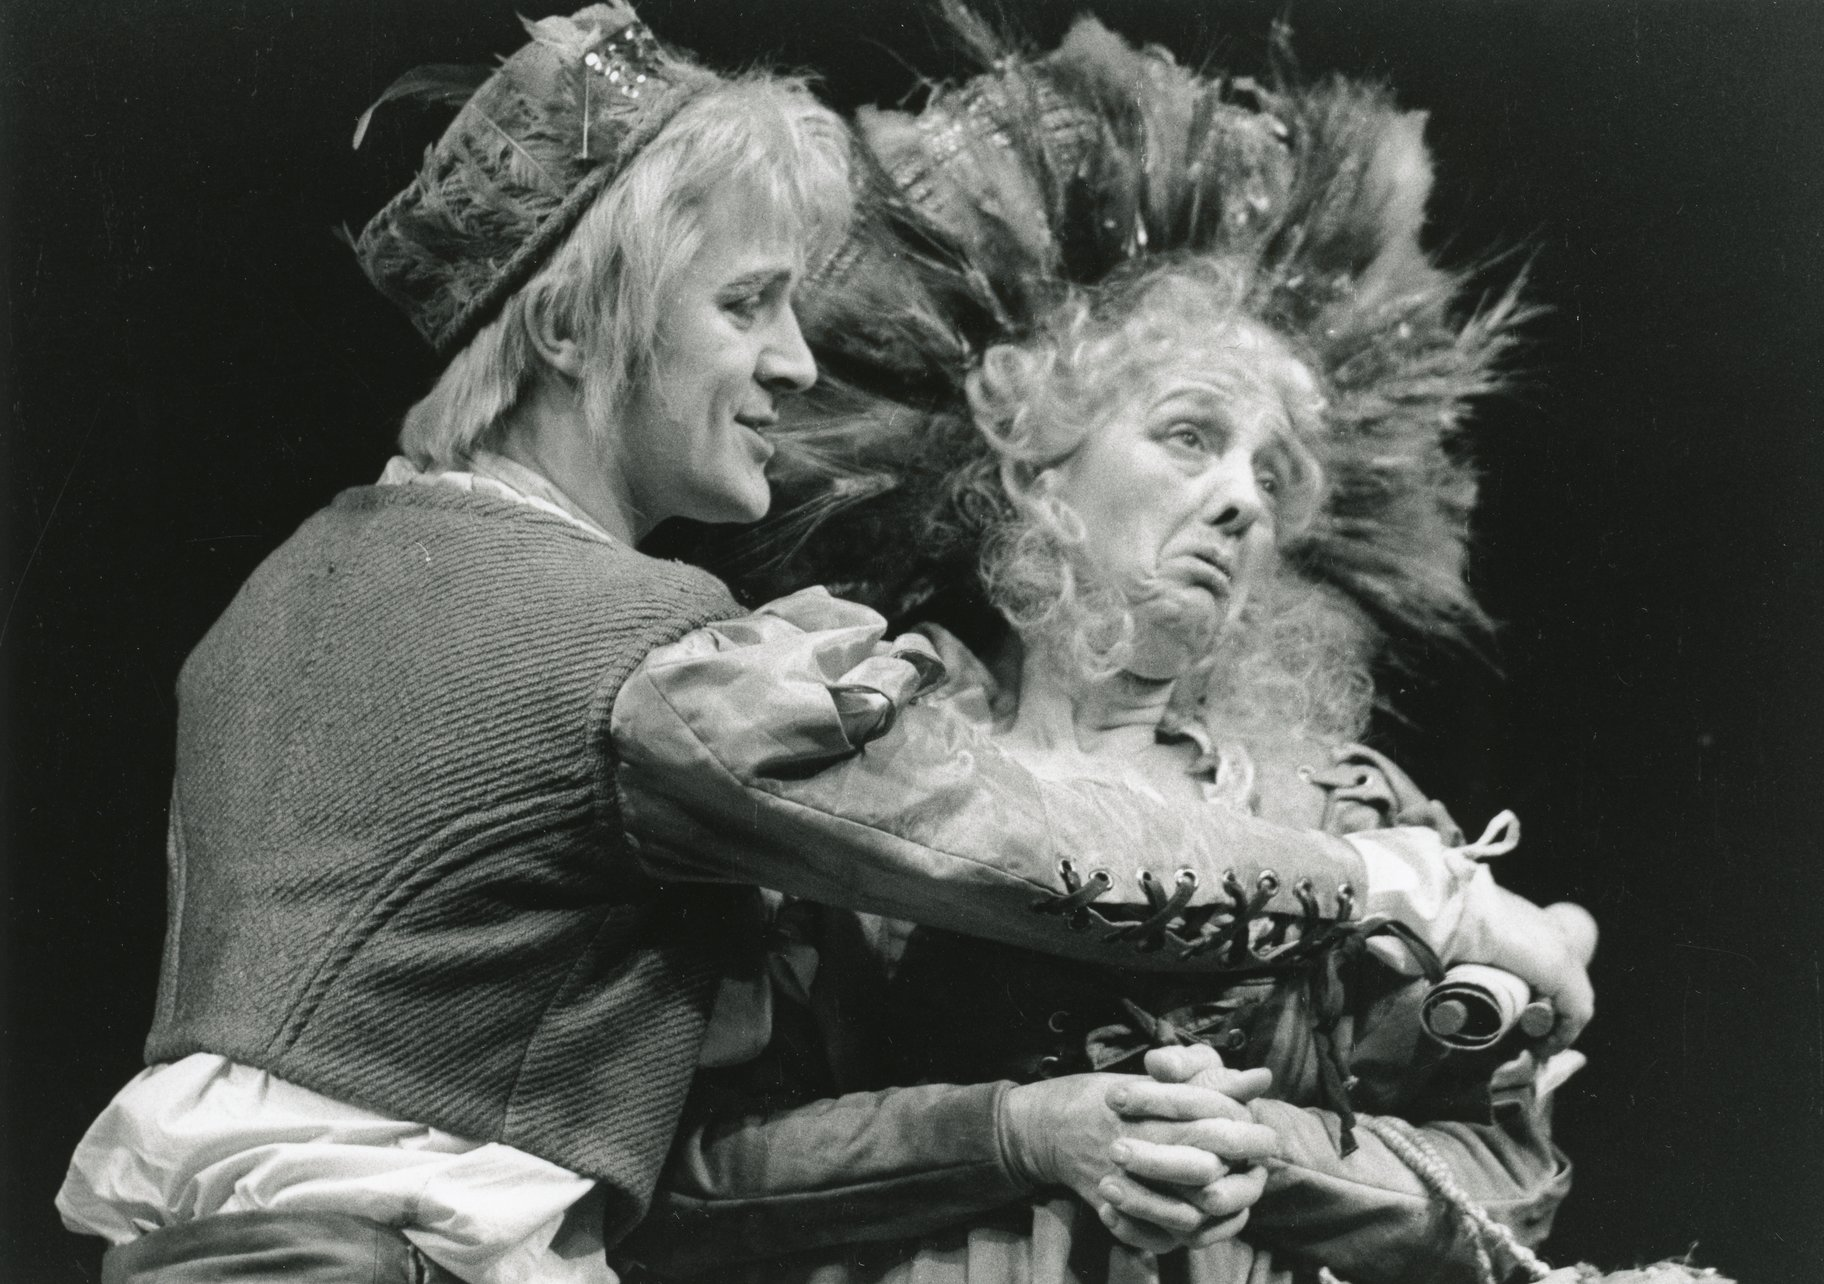 A man hugs a sad woman in a large feathered headdress.